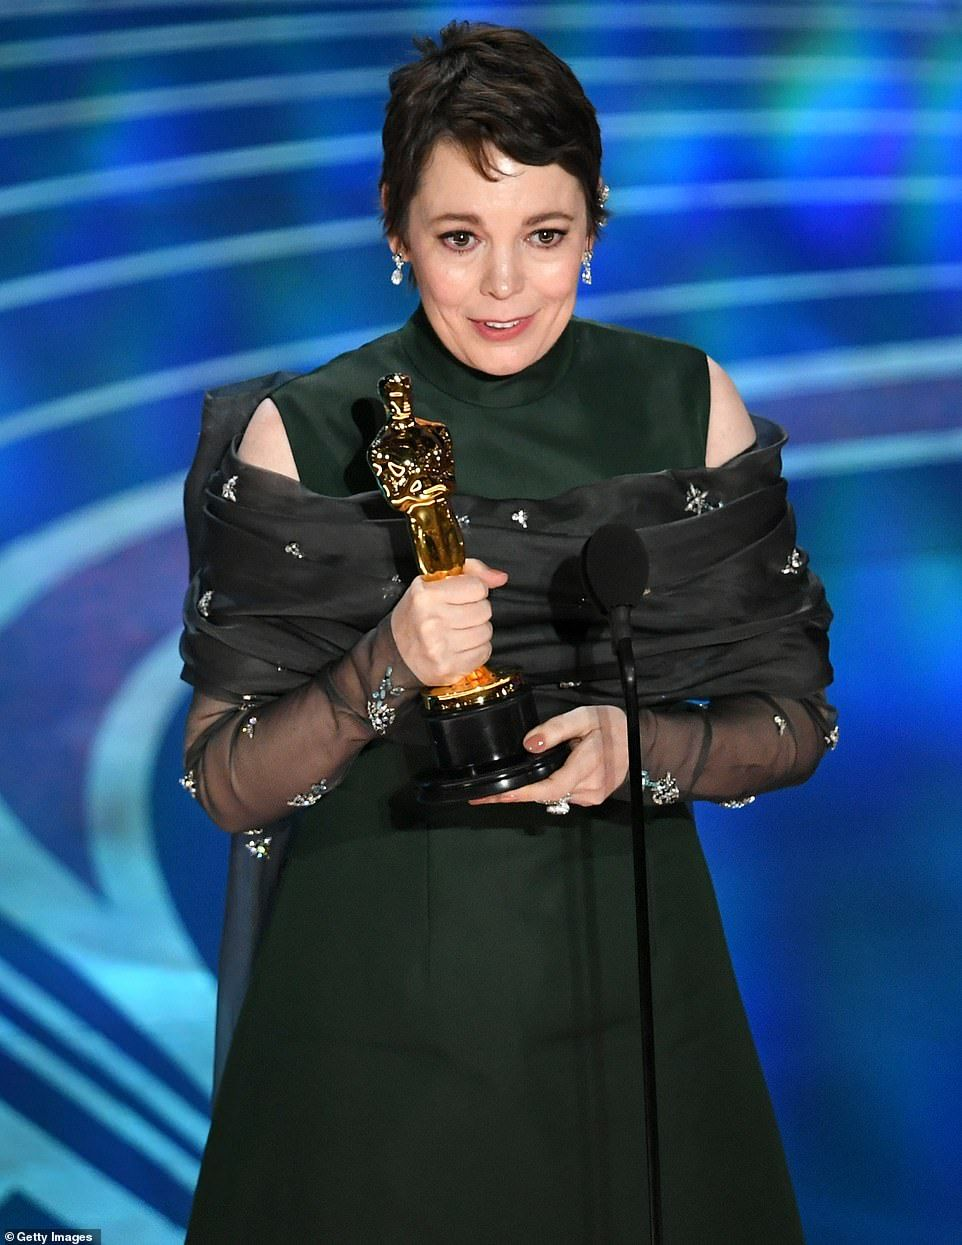 Oscars 2019: Olivia Colman brings down the house with her